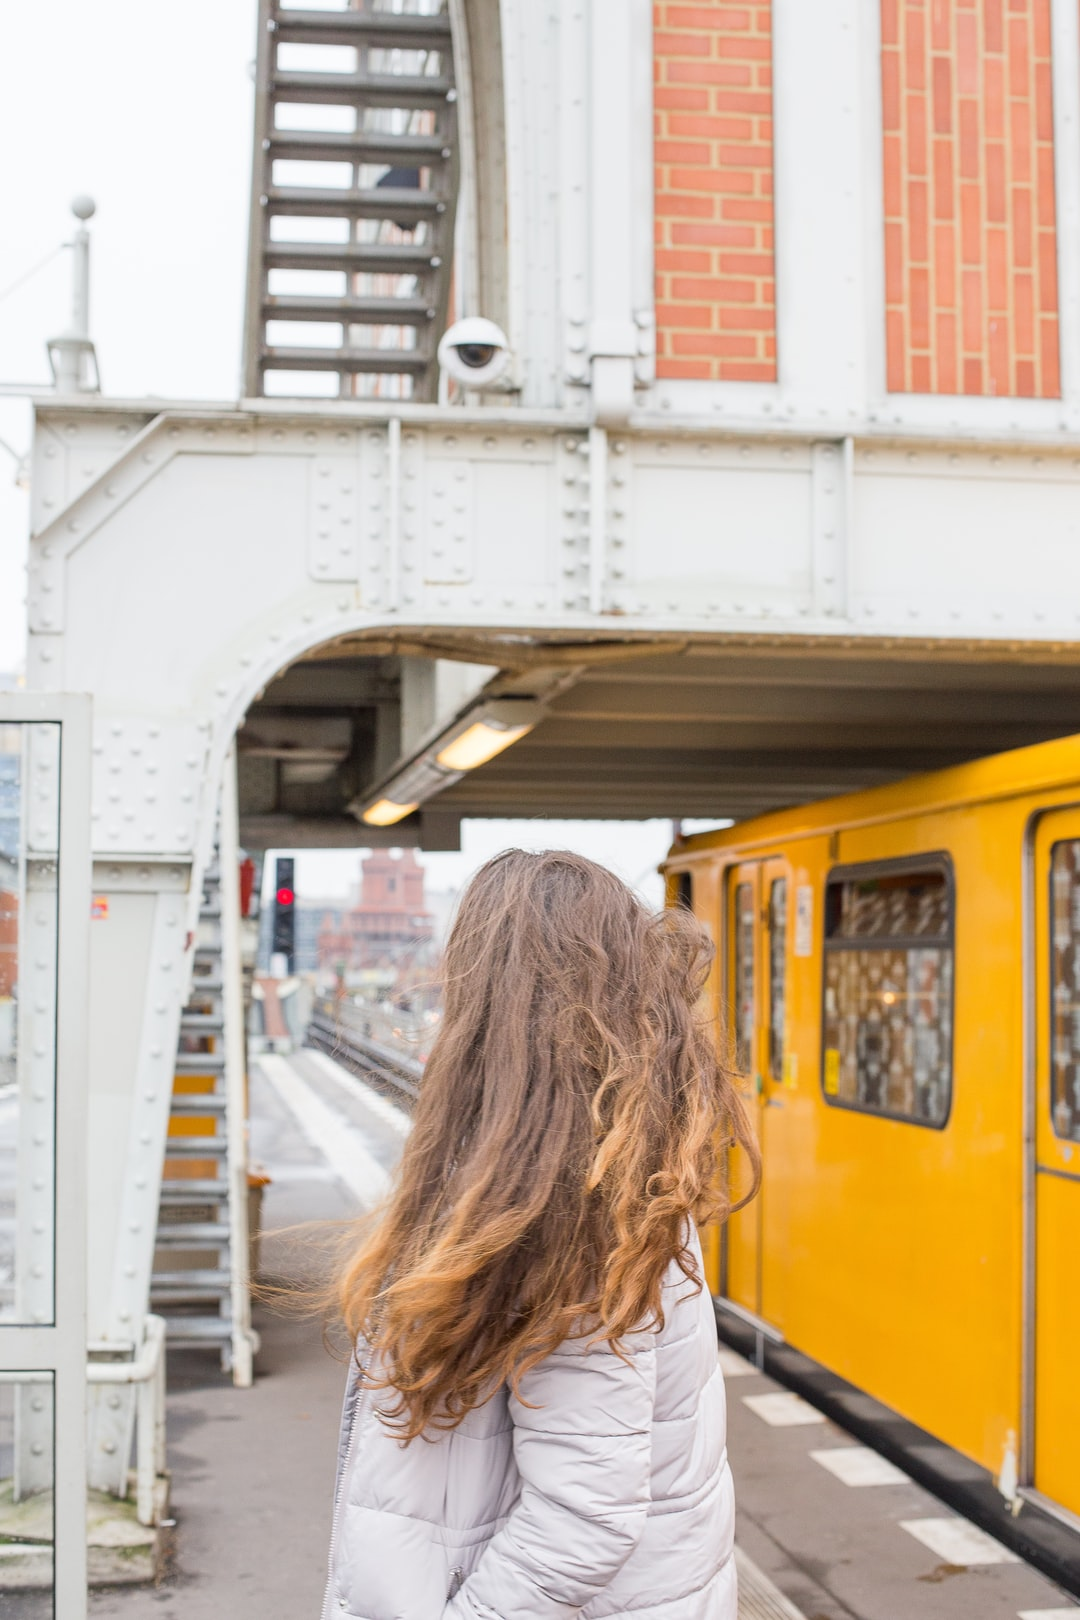 Warschauer Strasse, a woman at the station. The woman is young with long curly hair. She is turned back and is looking to the light. Her hair is following the wind. There is a yellow train on the right side of the photo. The photo is framed by the white metal bridge. There are stairs on the left side of the photo.